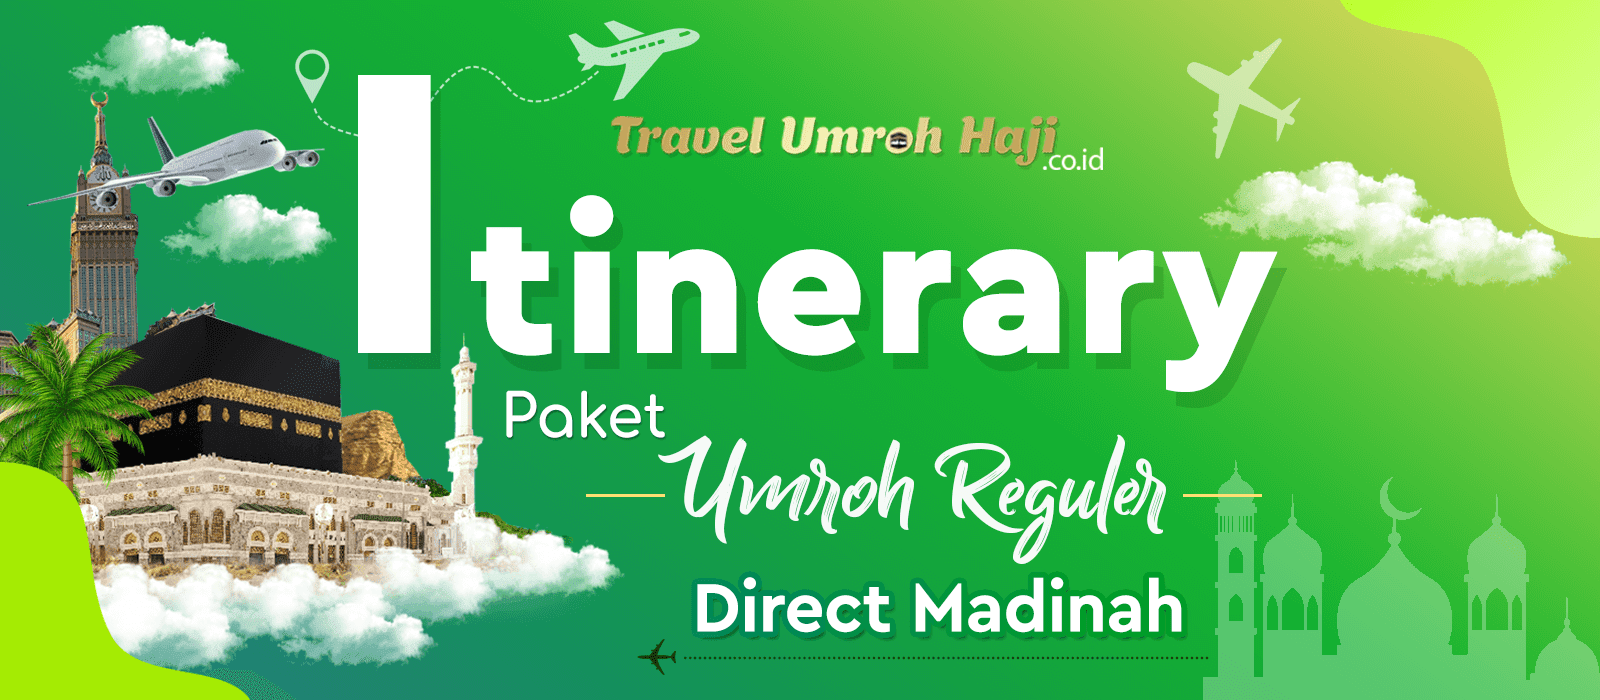 Program Itinerary Umroh 9 Hari Direct Madinah